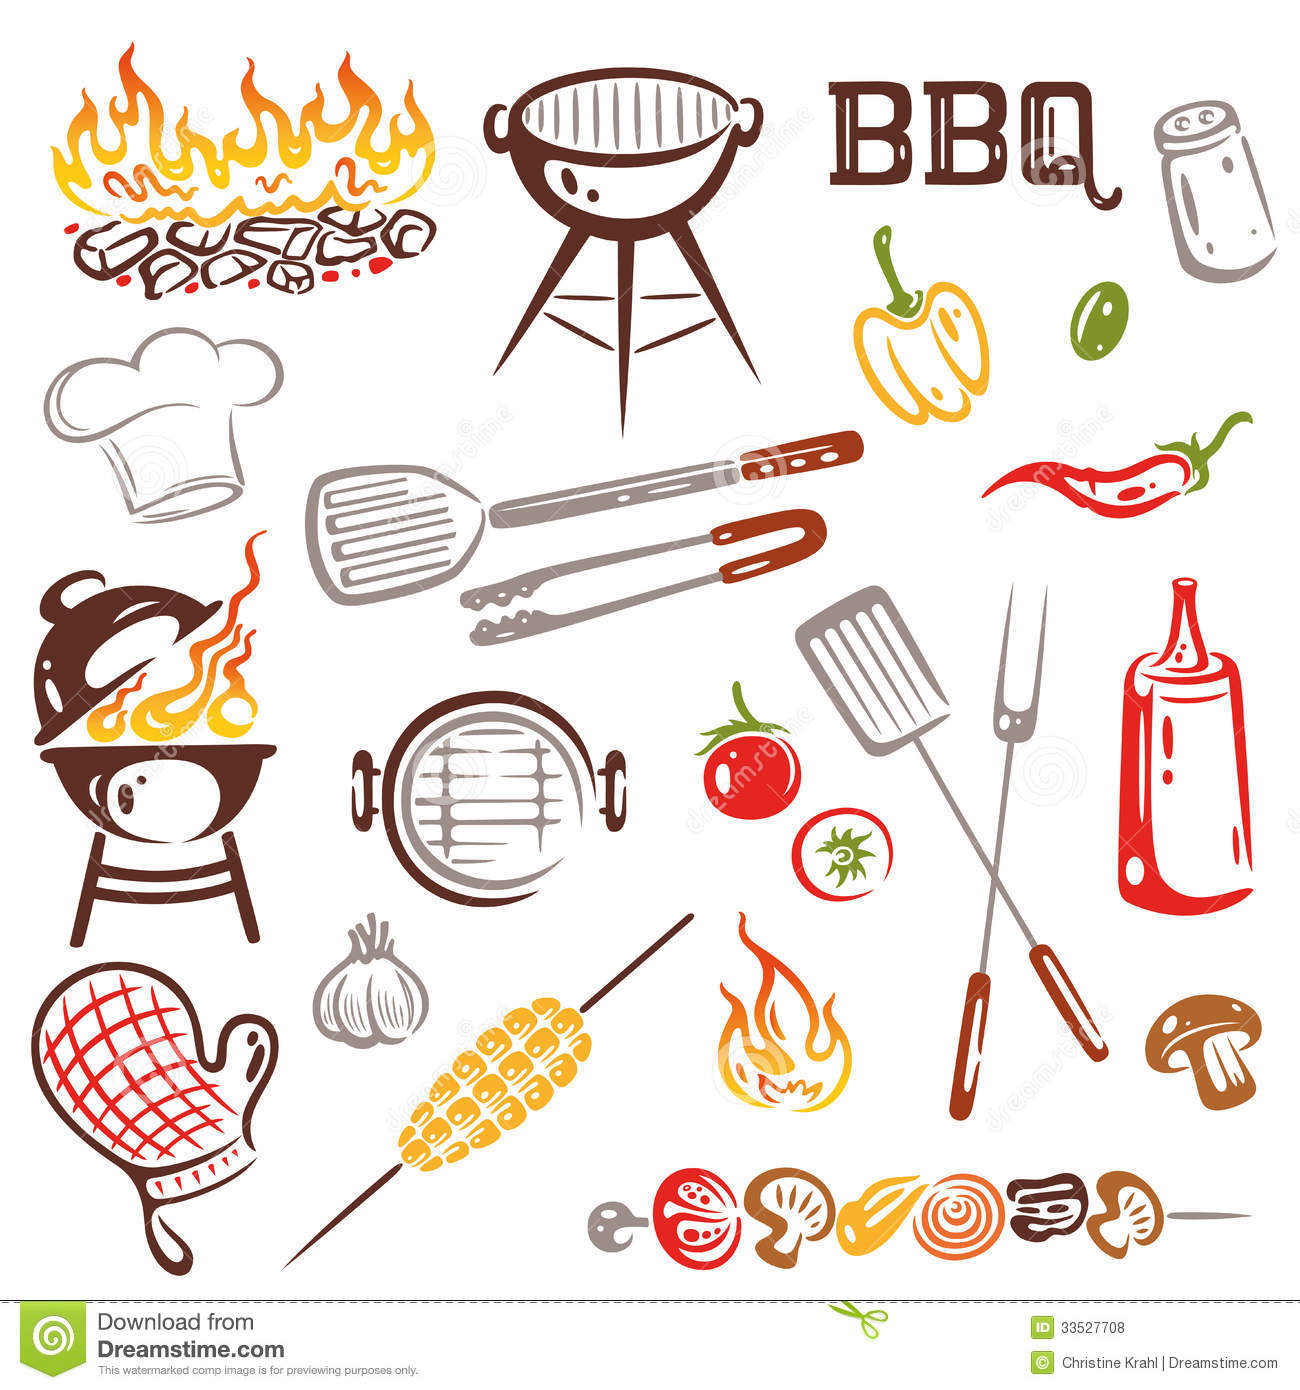 BBQ, Barbecue Royalty Free Stock Photos - Image: 33527708